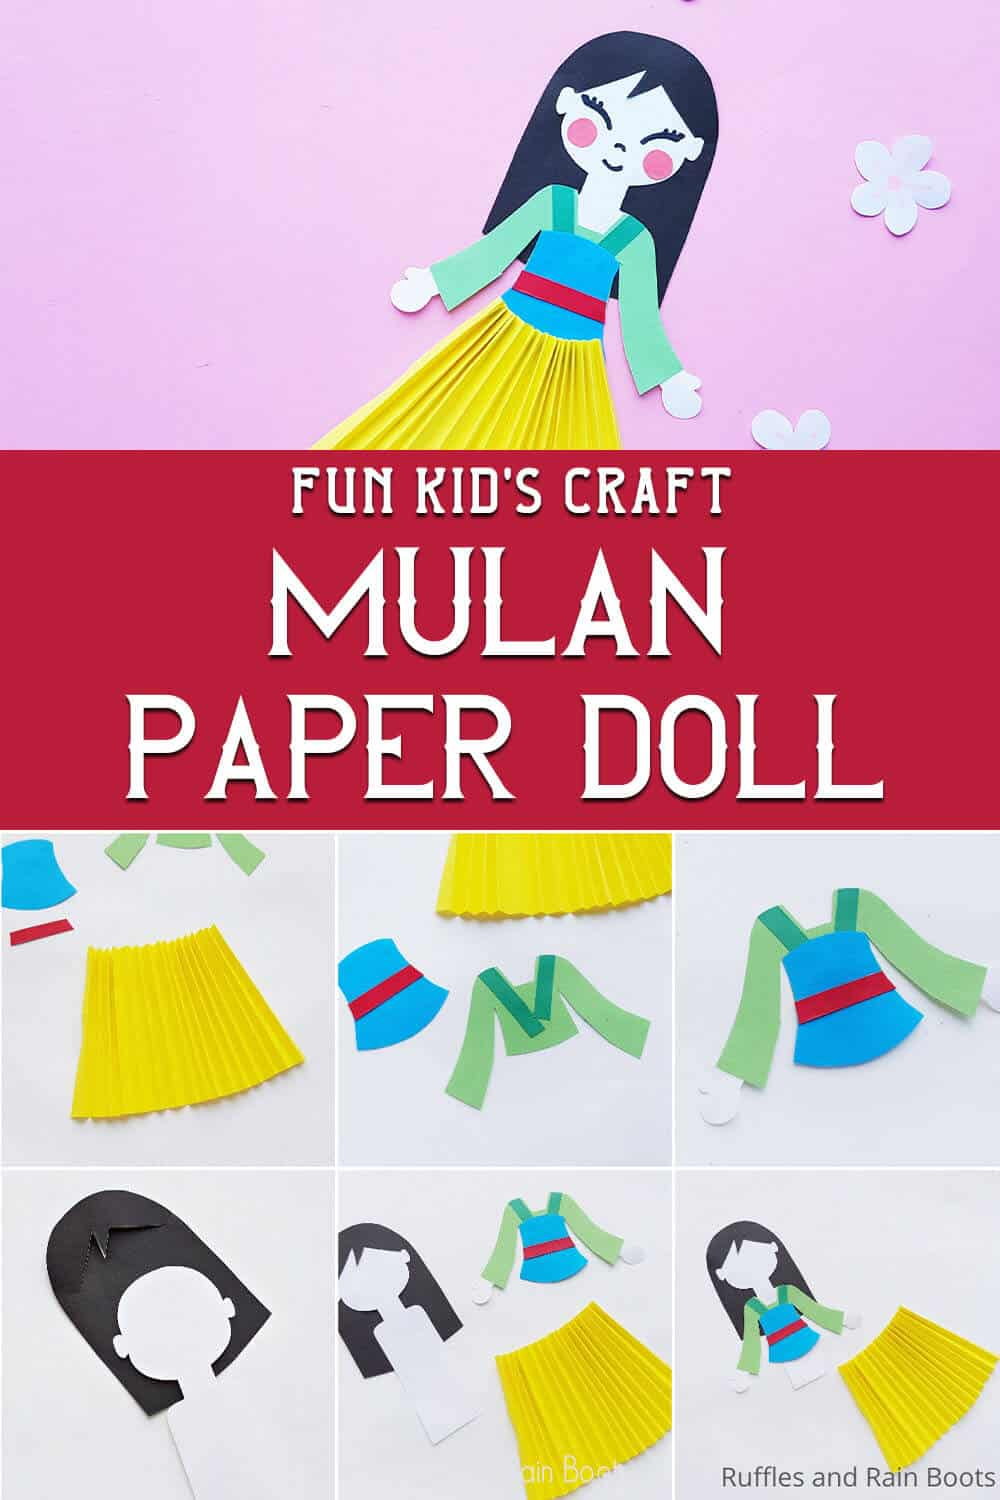 photo collage of easy paper craft for kids for a mulan movie night with text which reads fun kid's craft mulan paper doll